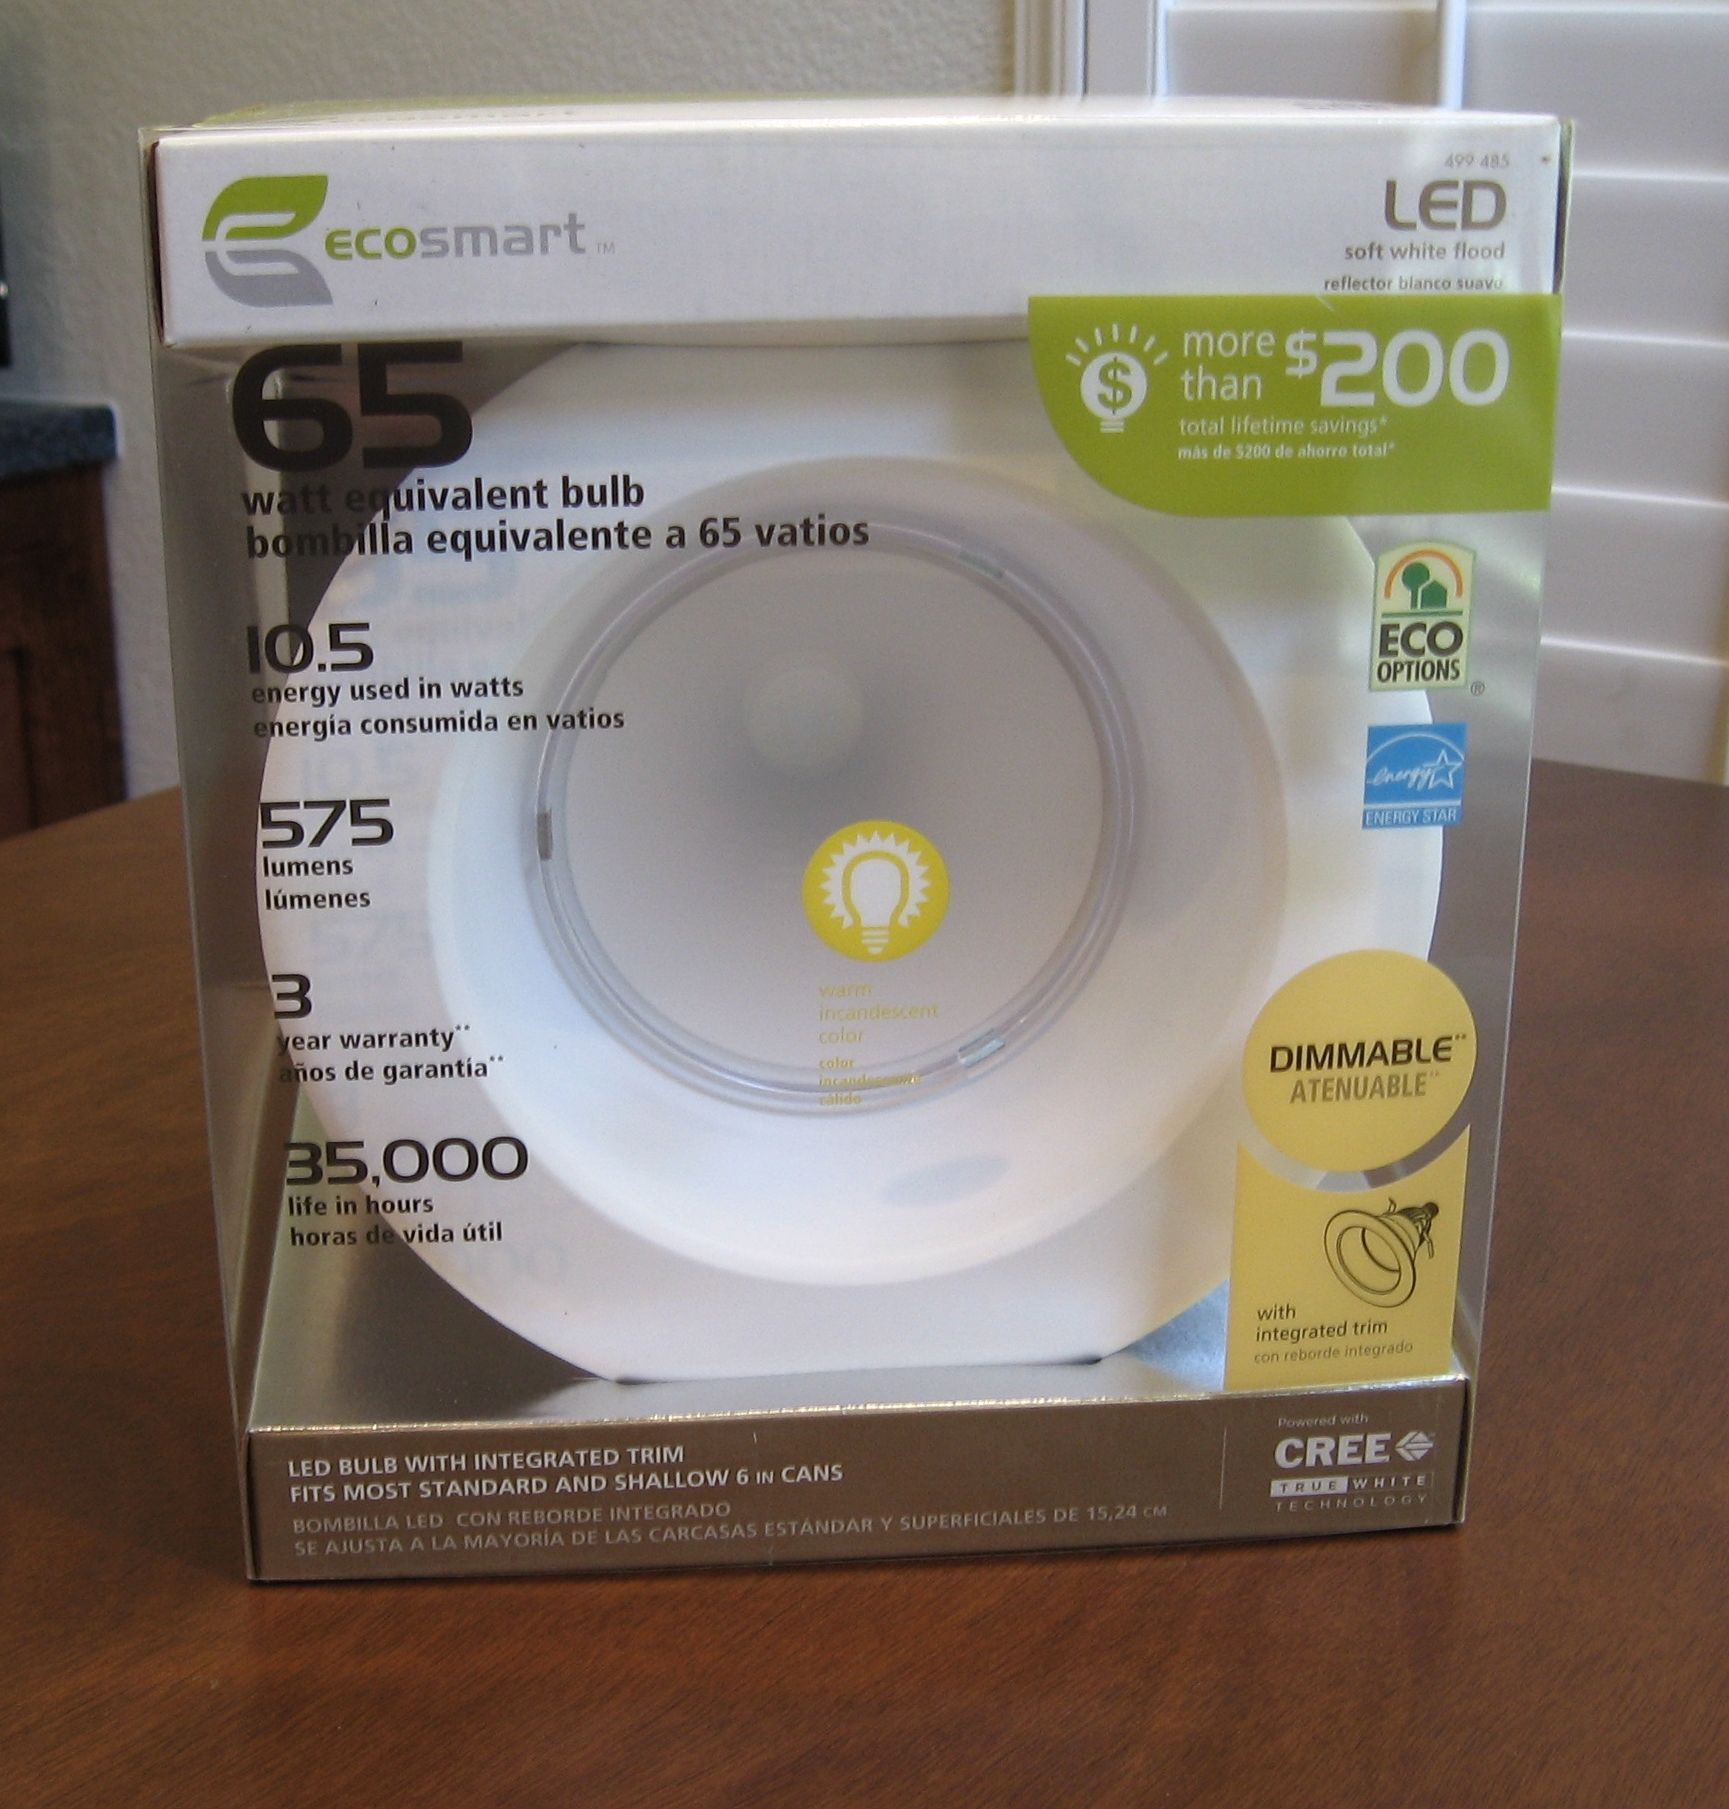 Review The Ecosmart 6 Led Recessed Downlight By Cree Led Recessed Lighting Kitchen Lighting Remodel Recessed Lighting